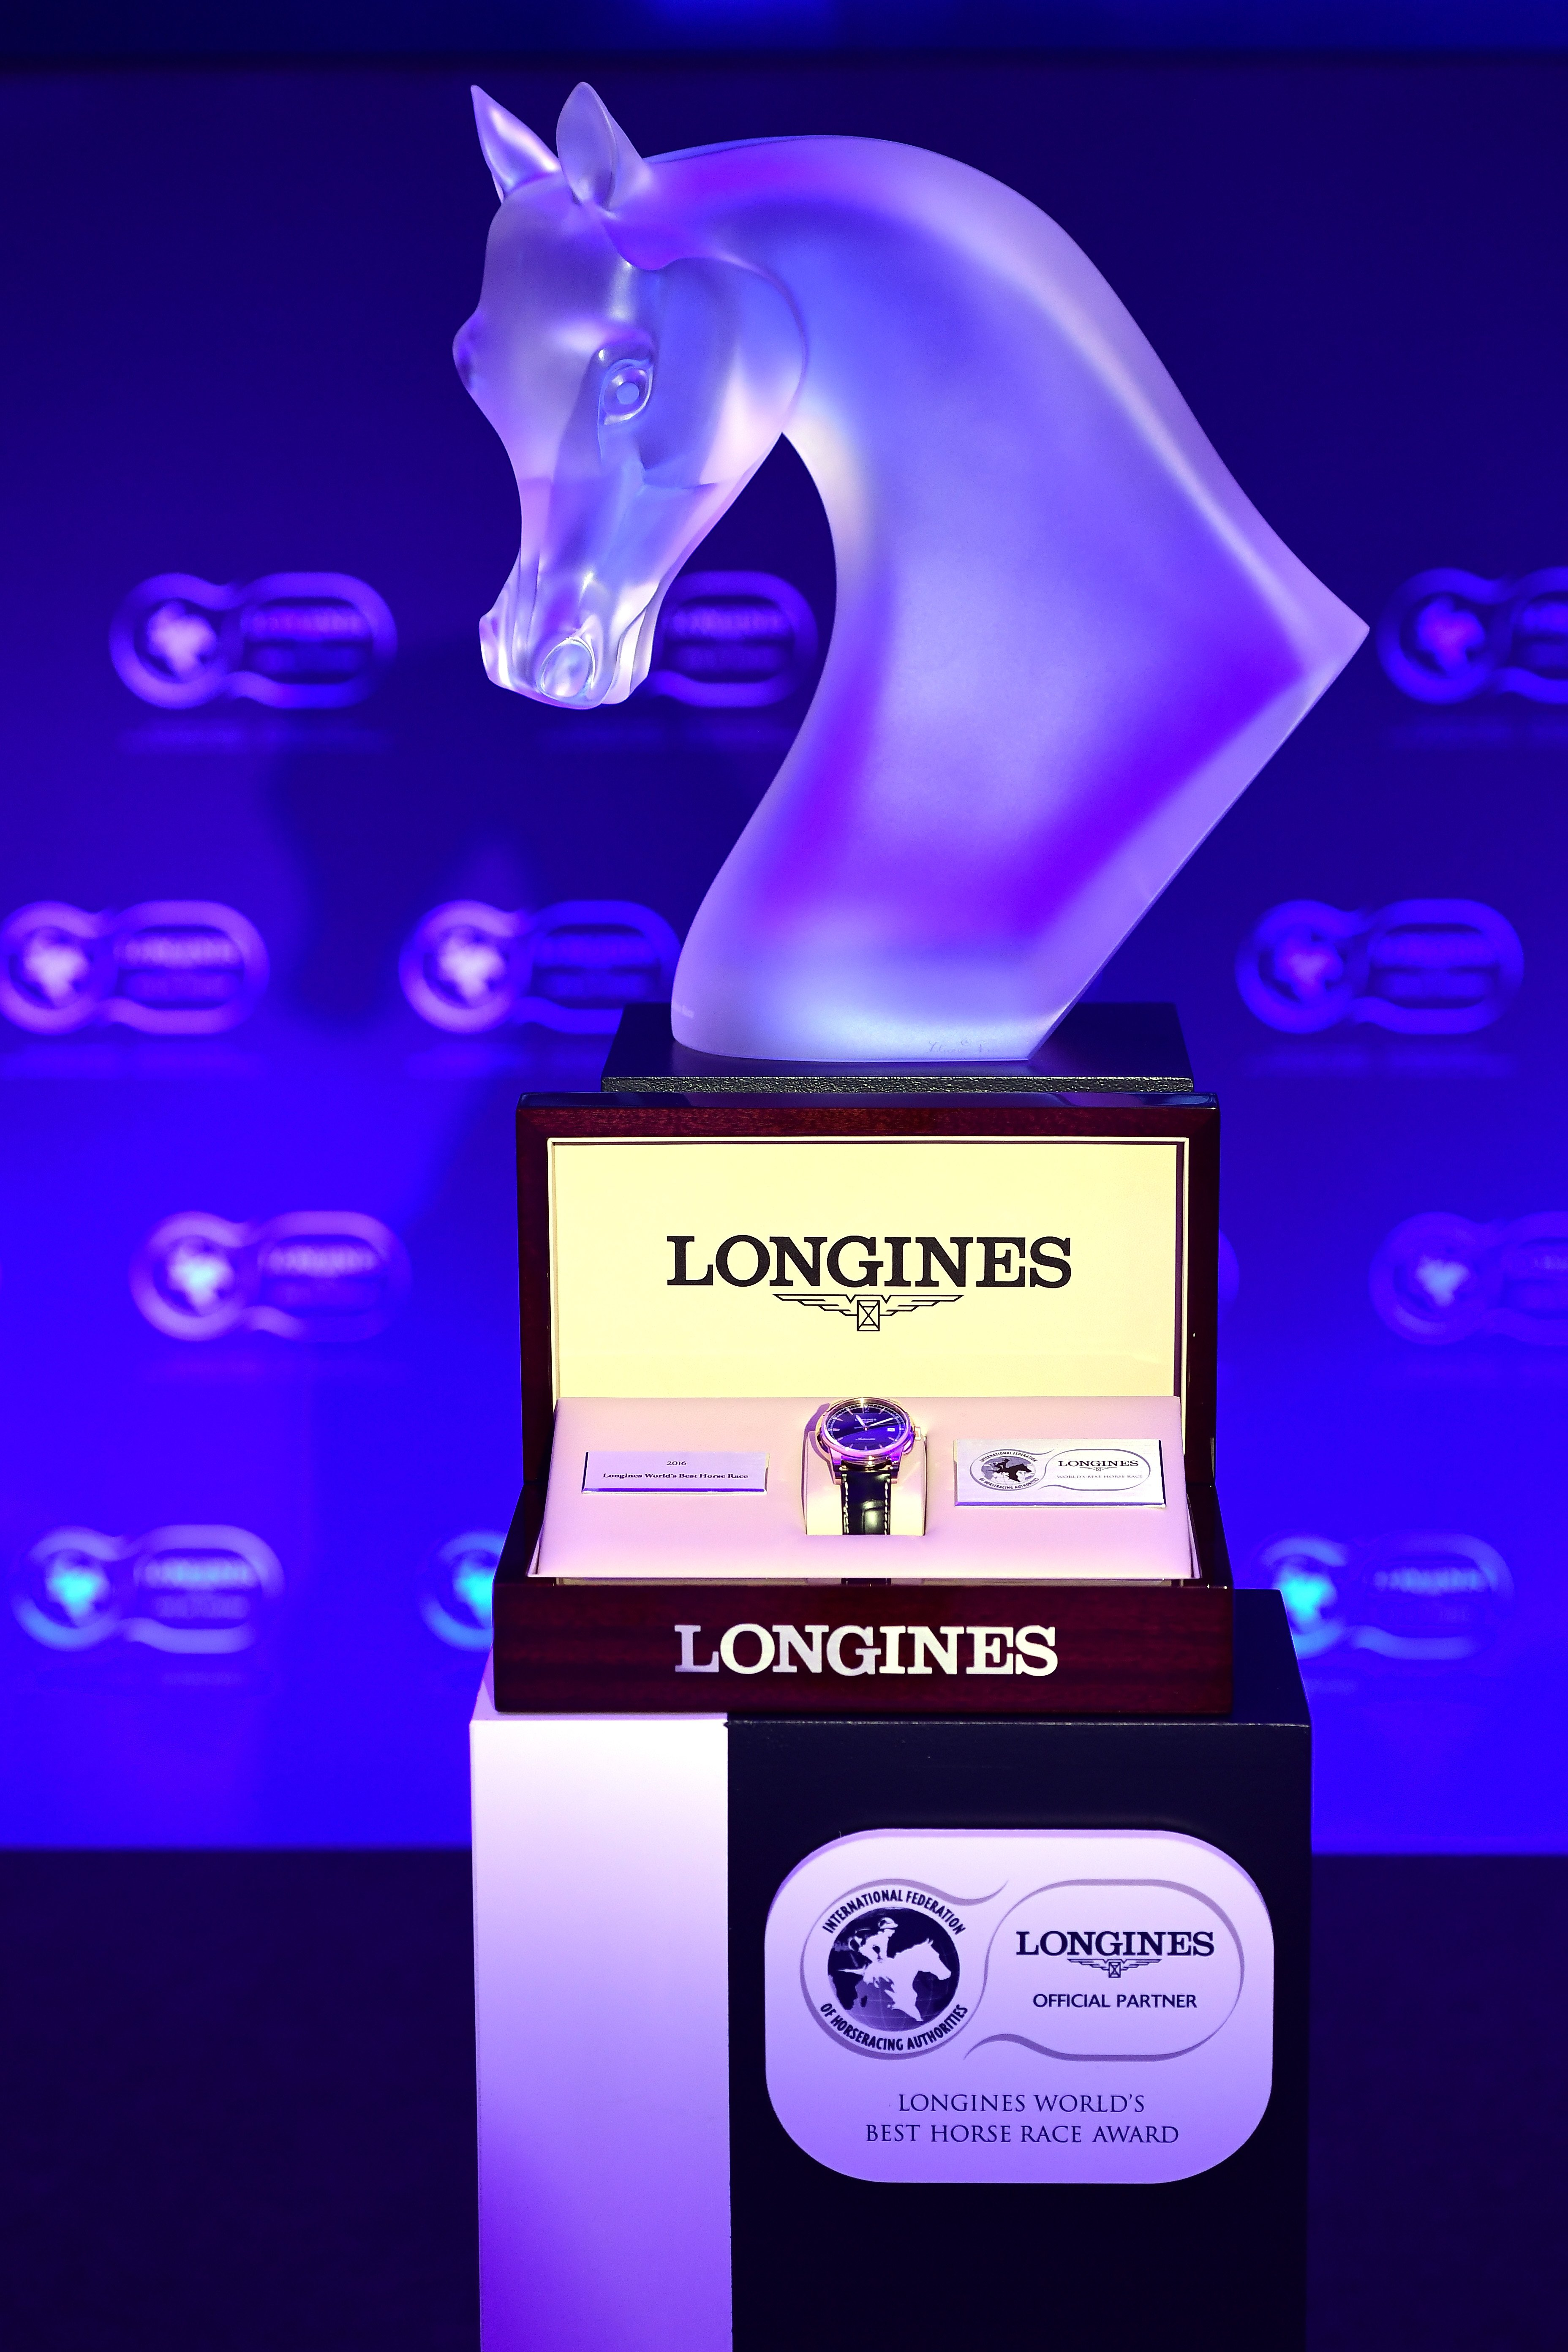 gettylonginesawards335 jpg-220580-original